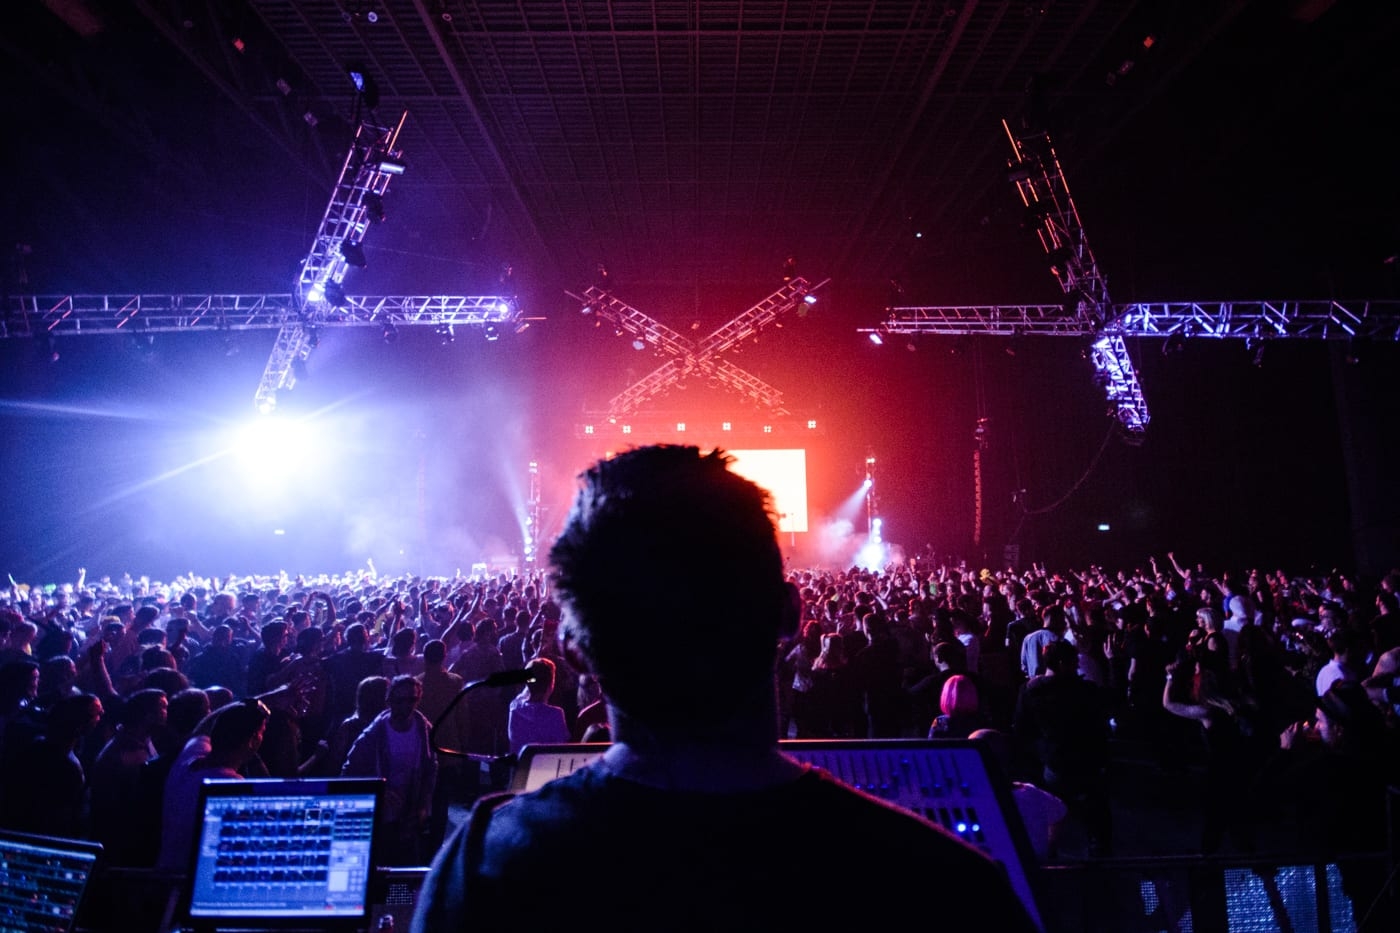 winterparty-at-3arena-dublin-30-10-2016-by-sean-smyth-38-of-53